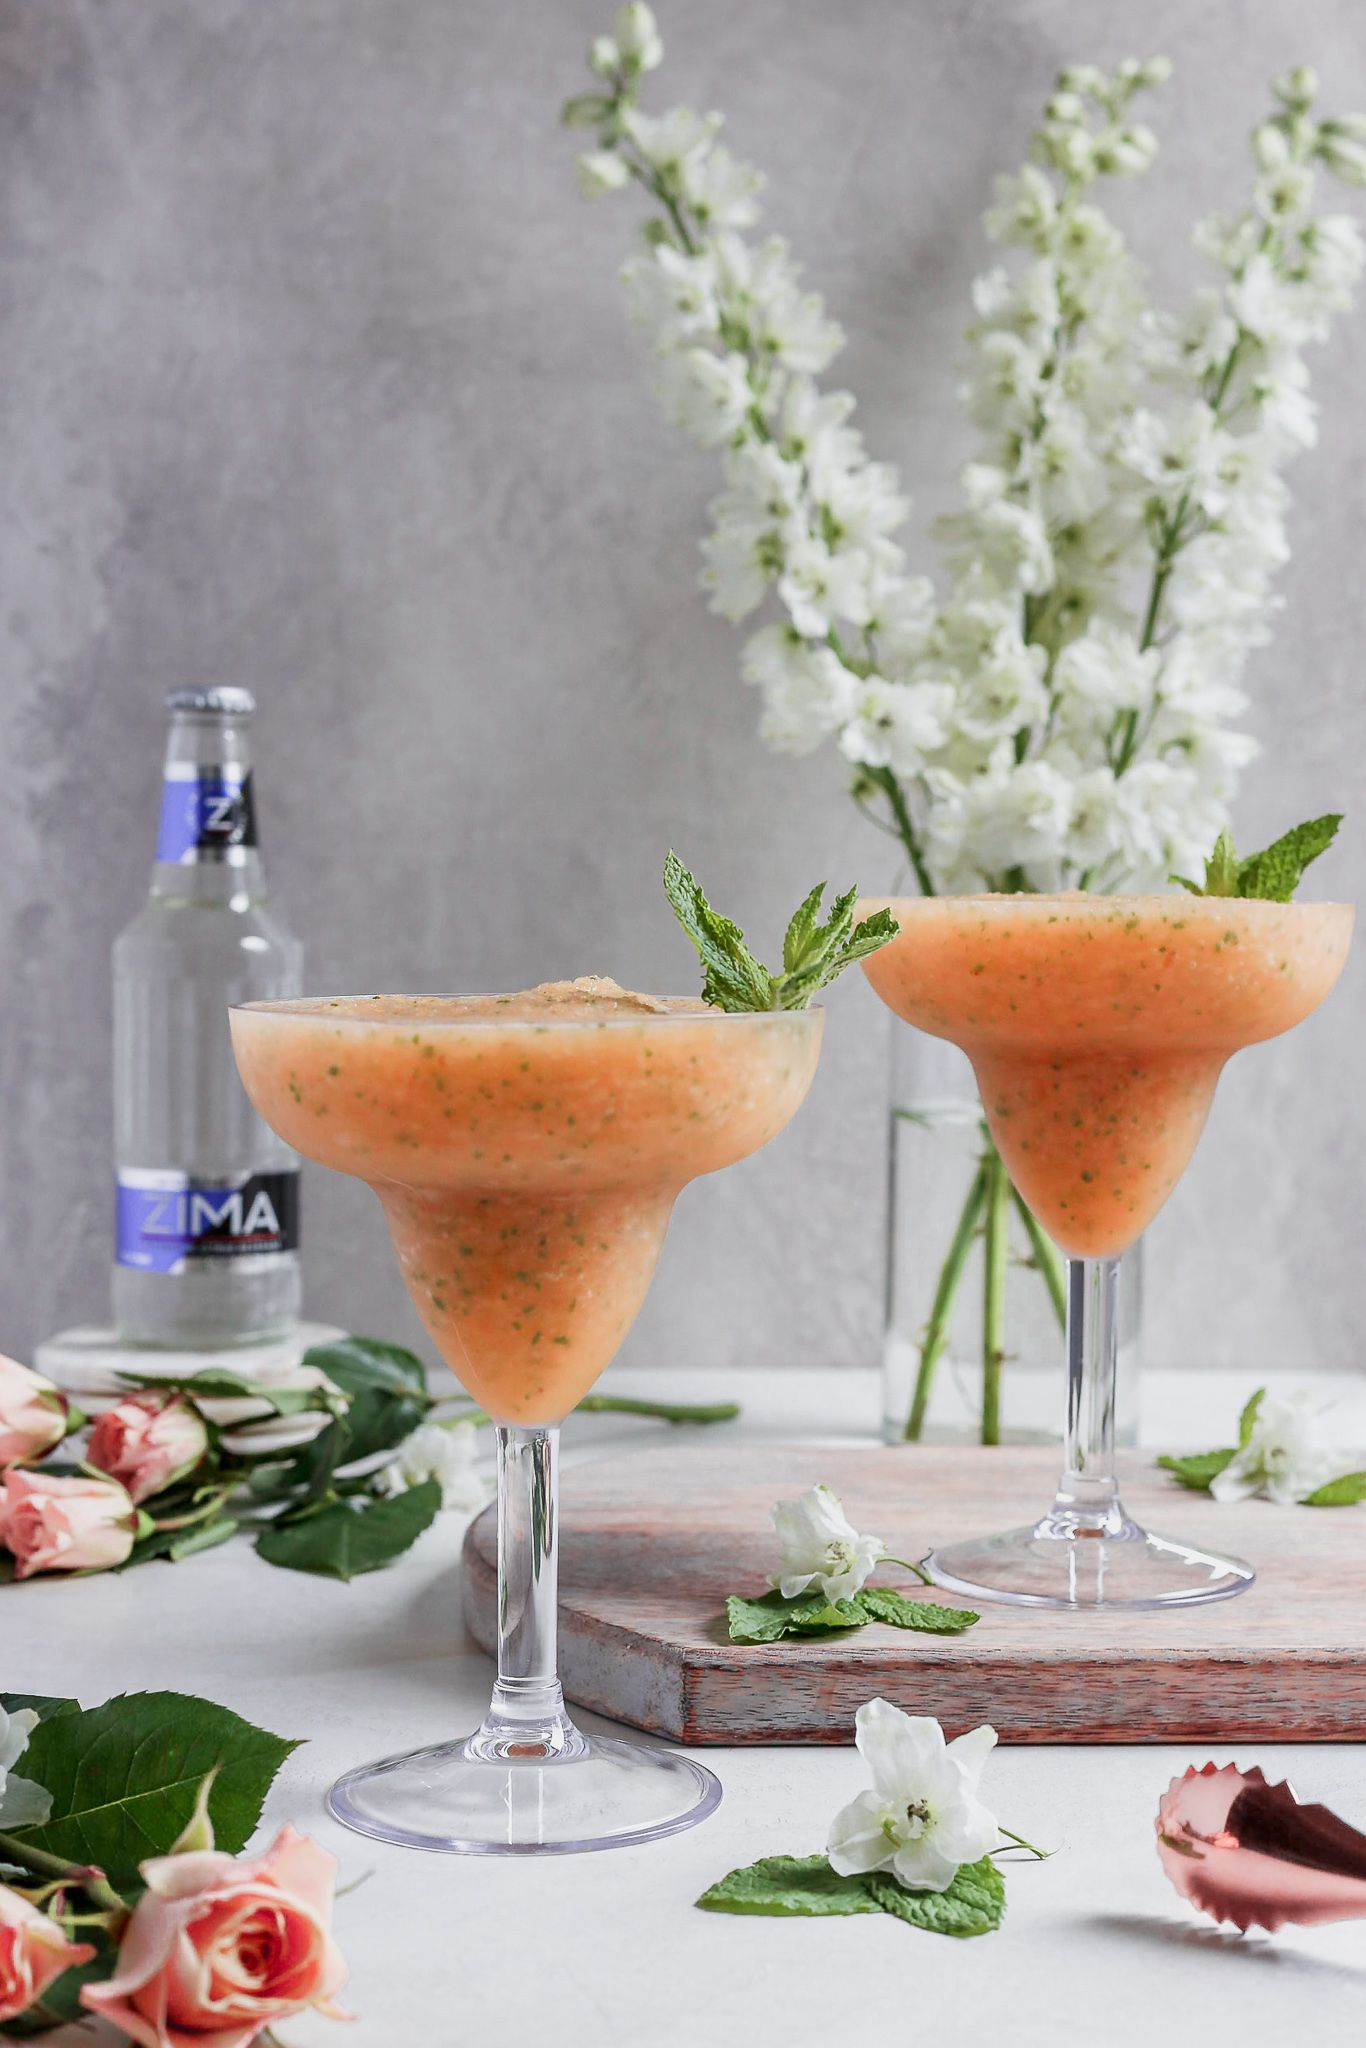 Zima Is Back Turn On Your 90 S Music And Make These Frozen Peach And Mint Summer Cocktails To Celebrate Zi Frozen Cocktails Summer Cocktails Mint Cocktails